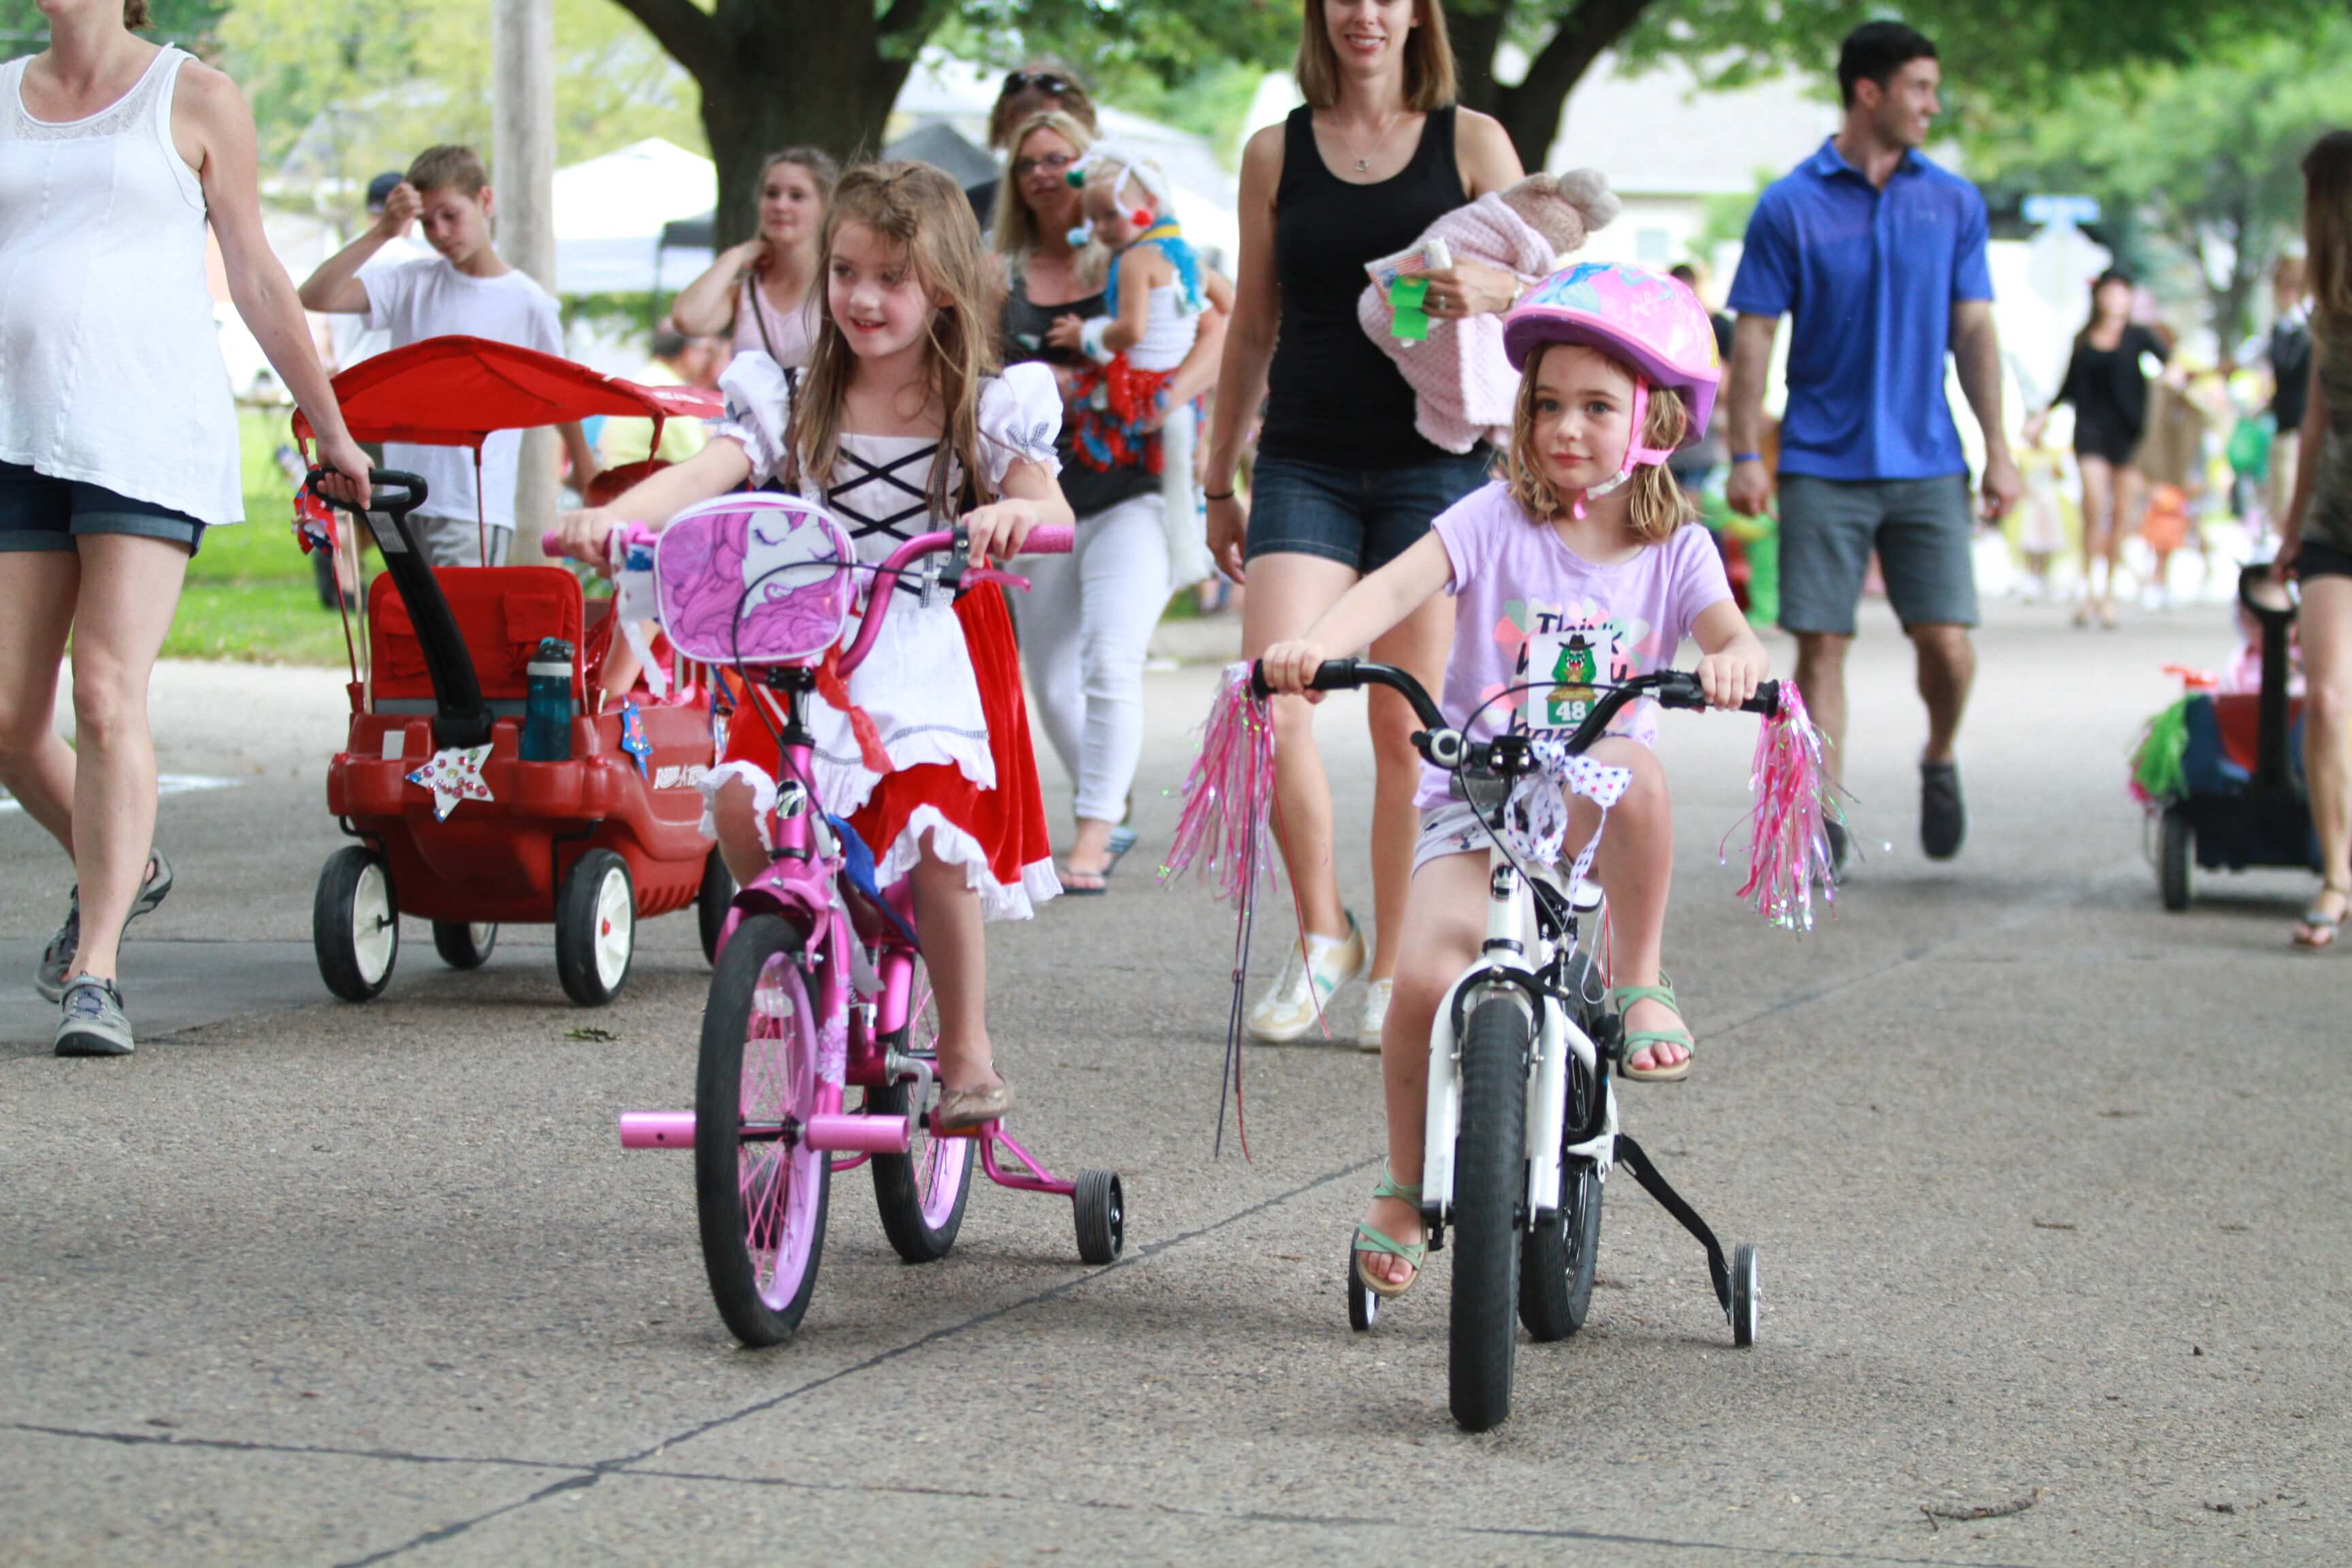 Two girls participate on bikes in the Kiddie Parade.